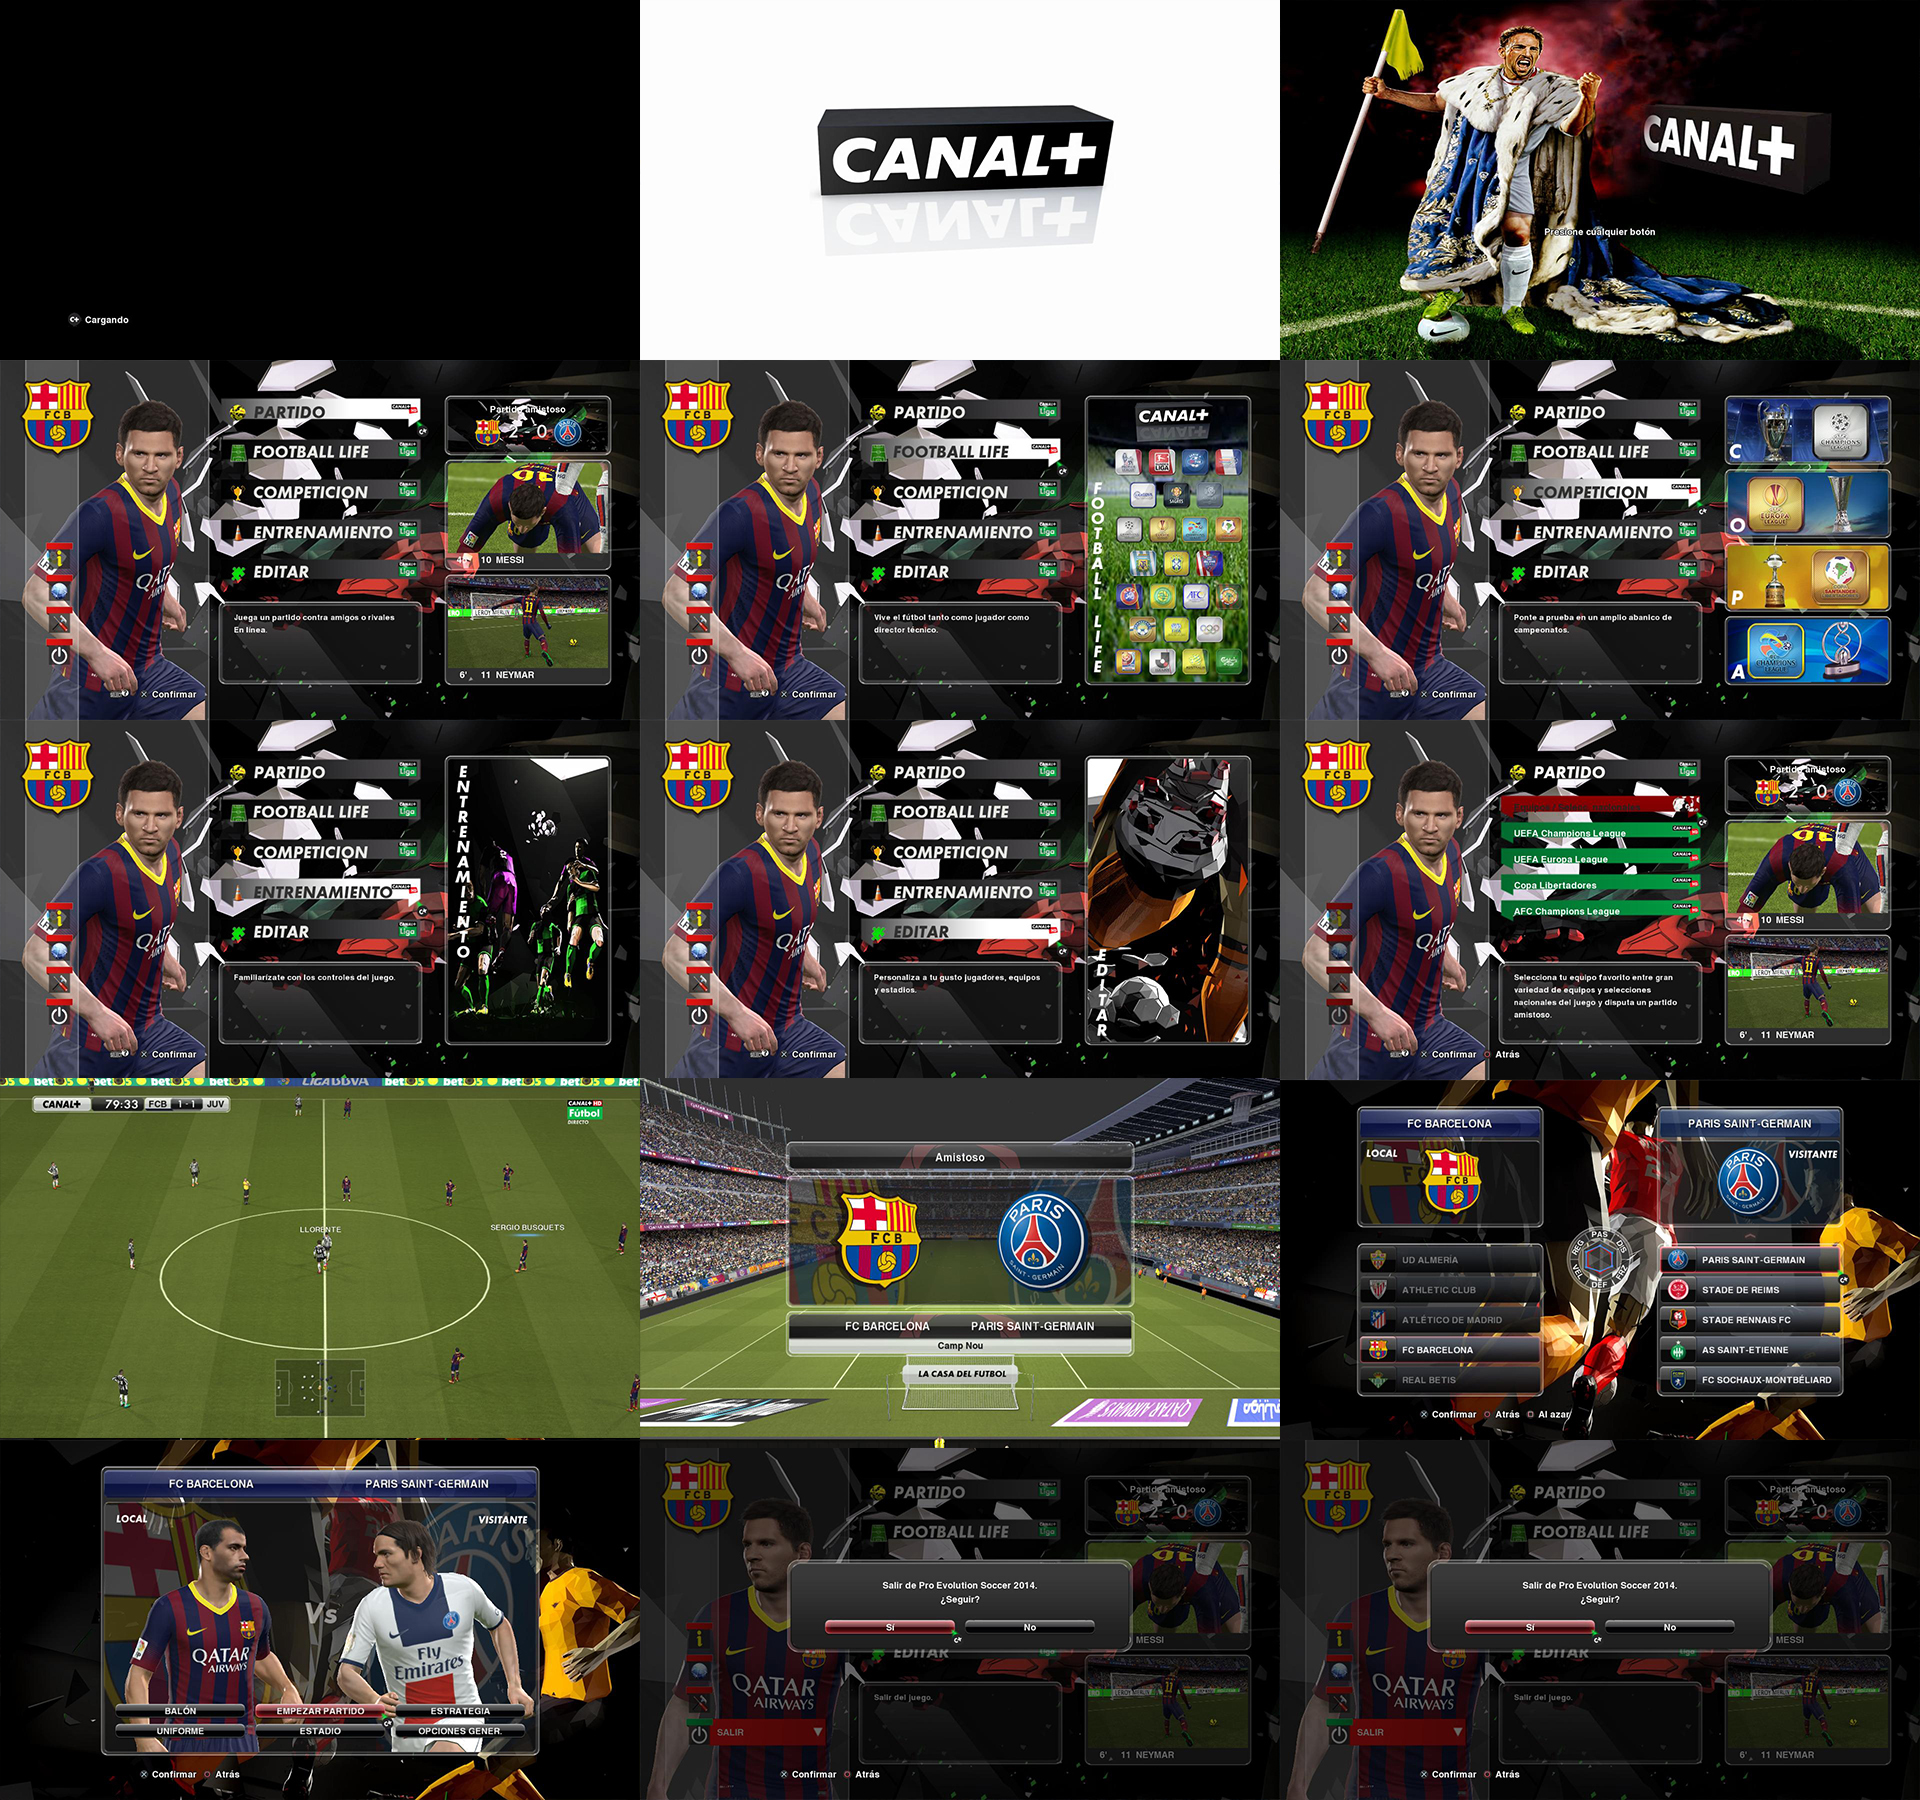 PES 2014 Canal + Graphic Mod by Meryoju